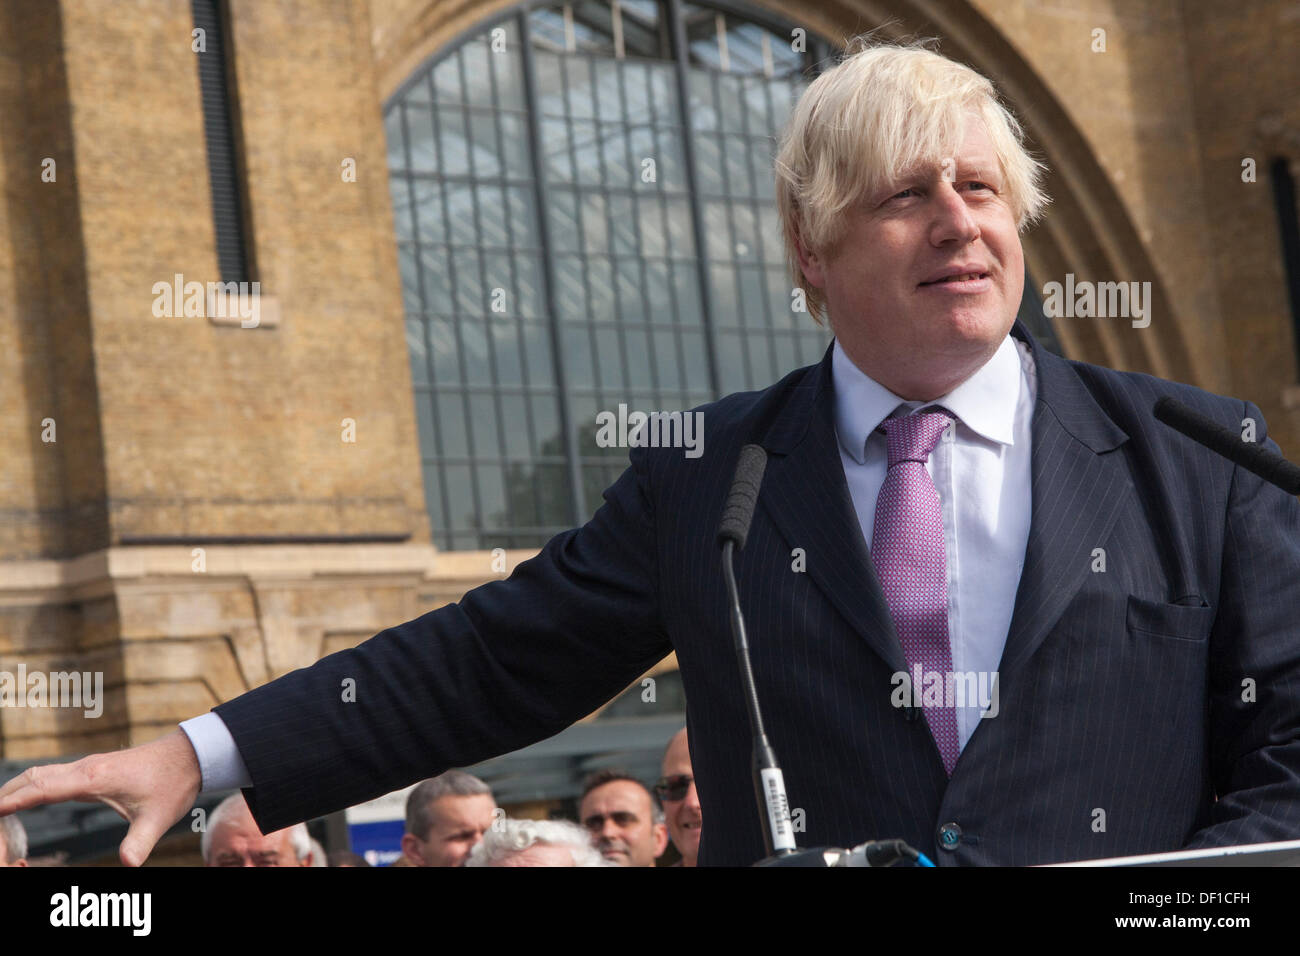 London, UK. 26th Sep, 2013. London Mayor Boris Johnson speaks at the official opening of Kings Cross Square following the station's £550m refurbishment. Credit:  Paul Davey/Alamy Live News - Stock Image